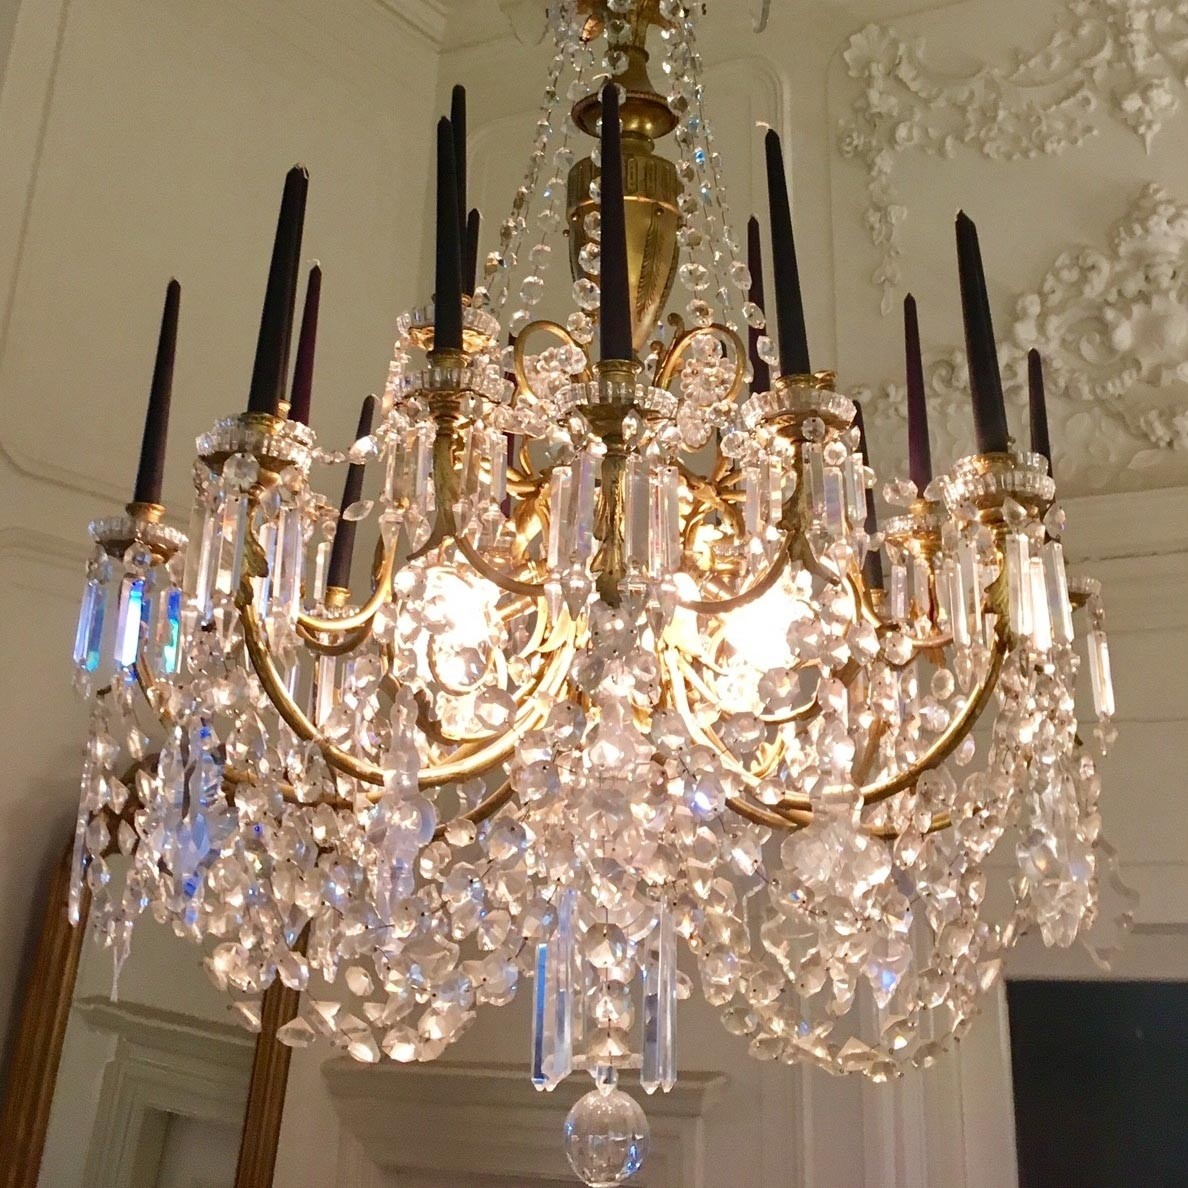 Large mid 19th century French chandelier